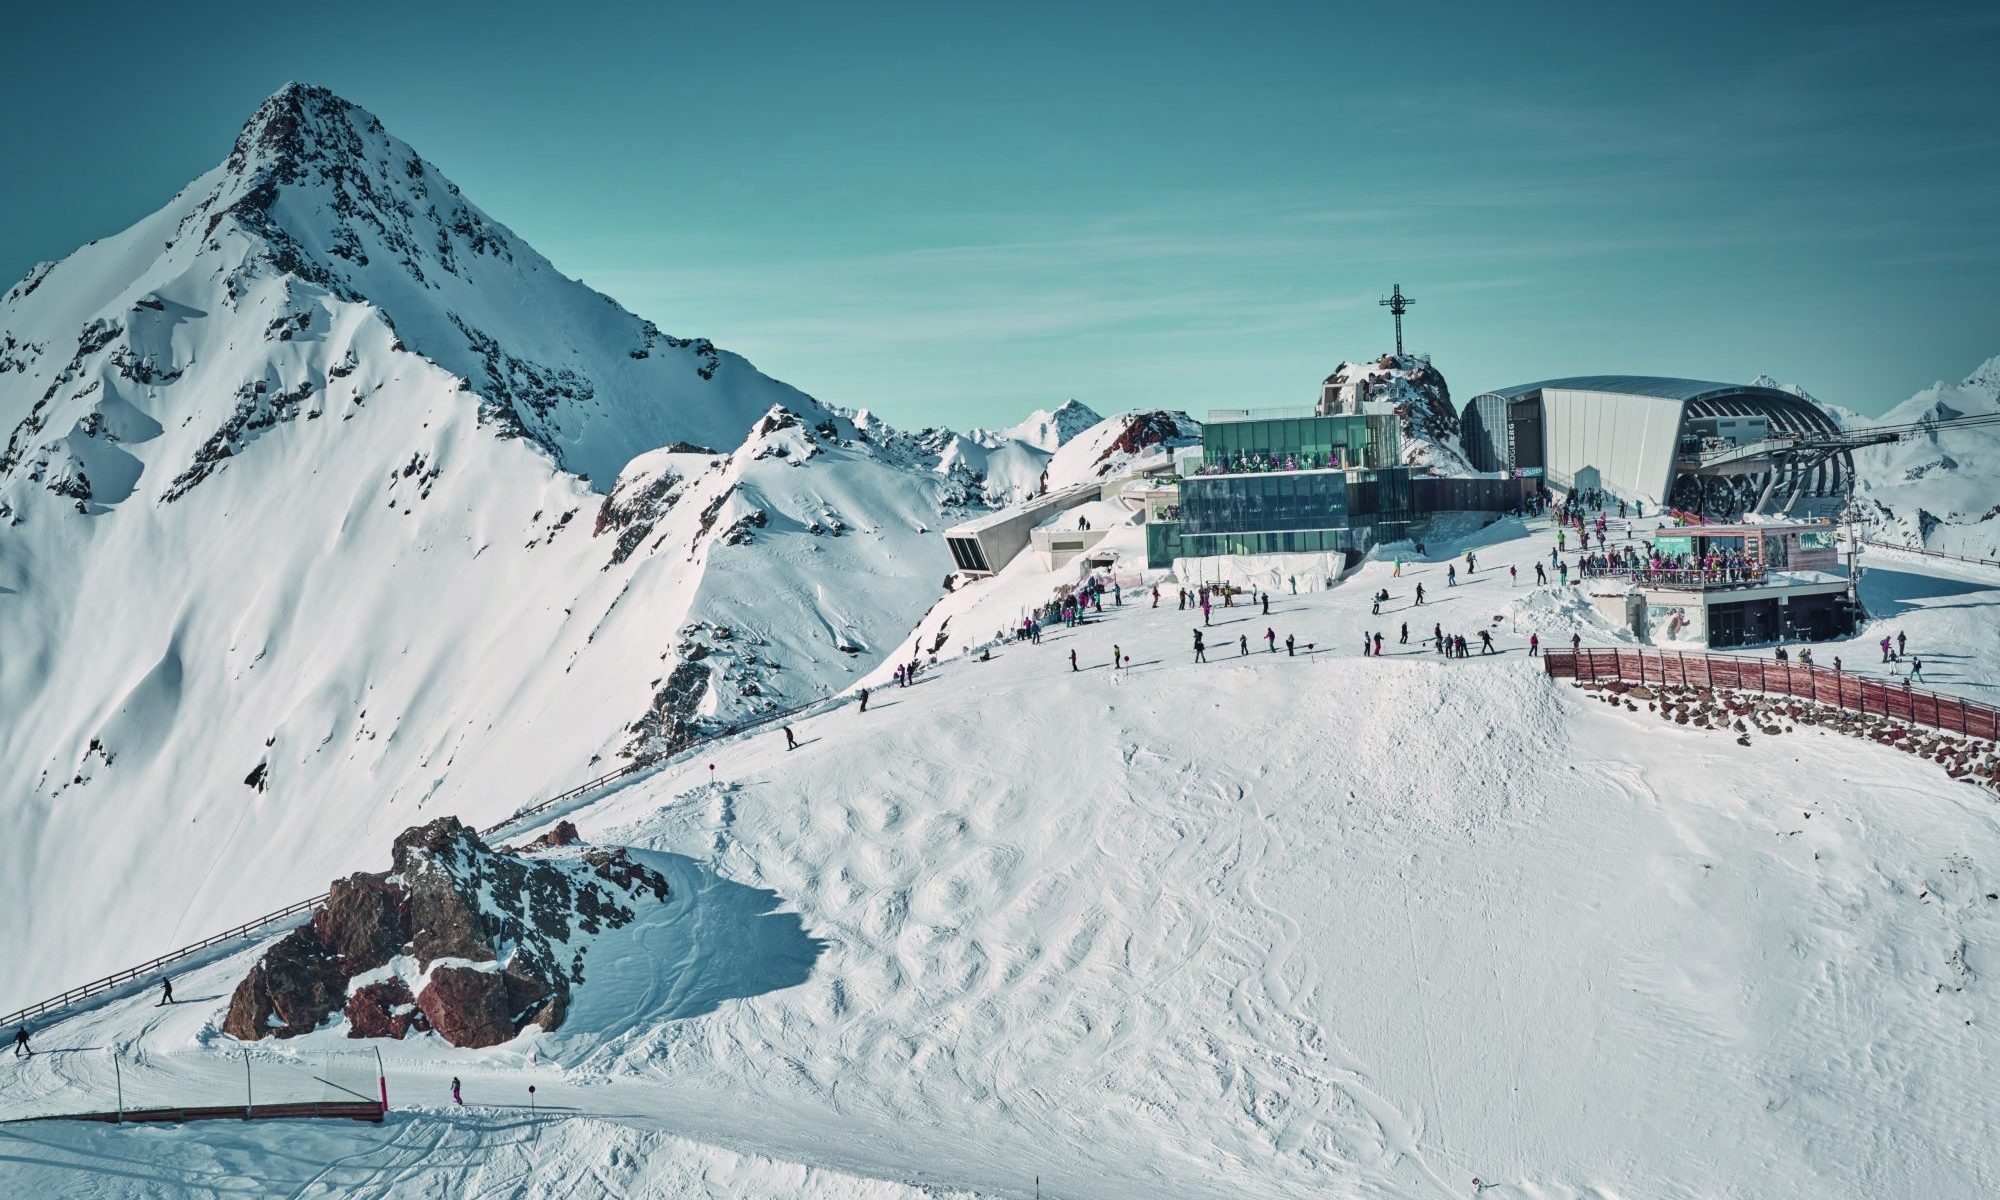 Innerötztal - Sölden with Obergurgl / Hochgurgl / Vent and Sölden. Ski this Easter with your family in 'snow sure' Obergurl-Hochgurgl and Sölden with The-Ski-Guru TRAVEL